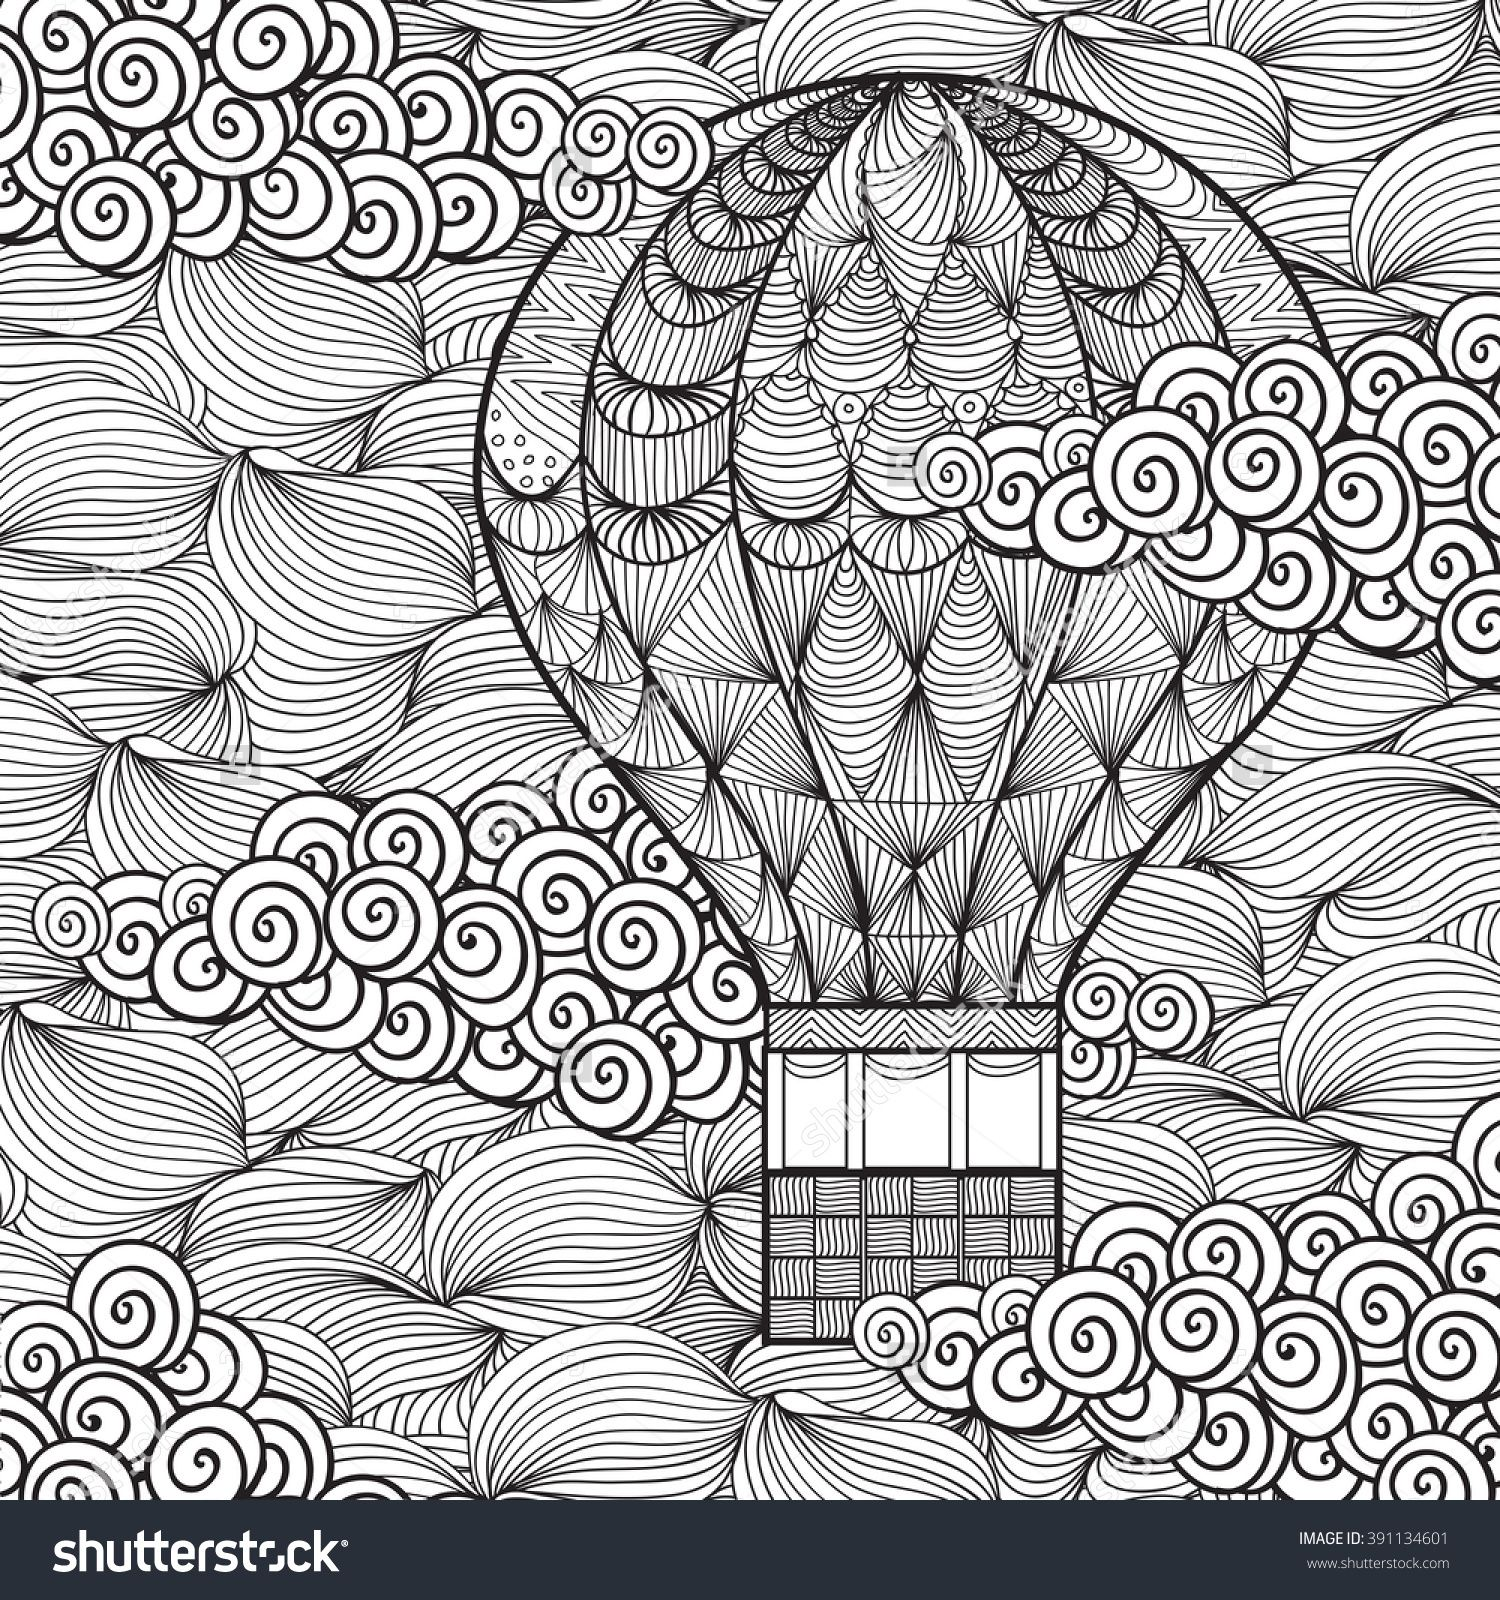 Printable Cloud Coloring Pages For Kids   1600x1500